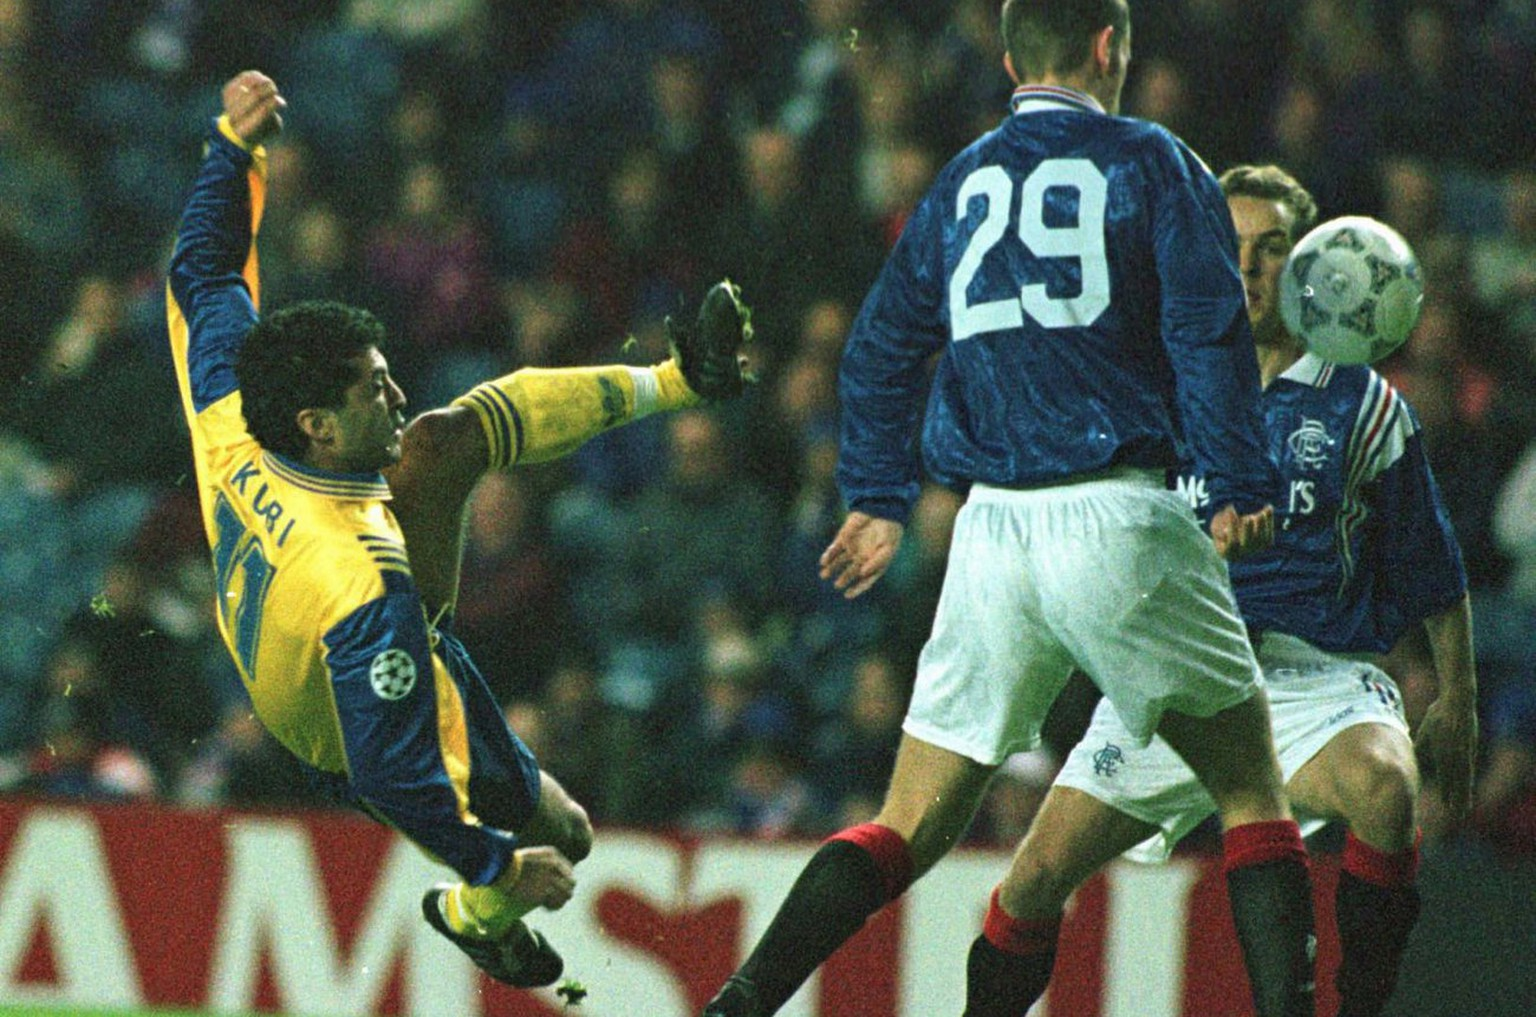 Kubilay Tuerkyilmaz (left) from Grasshoppers Zuerich fires a shot at the goal whilst Glasgow Rangers player Scott Wilson (29) looks on during the UEFA Champions League game between Glasgow Rangers and GC played at Ibrox stadium in Glasgow, Scotland, on Wednesday, November 20, 1996. (KEYSTONE/AP Photo/Dave Caulkin)